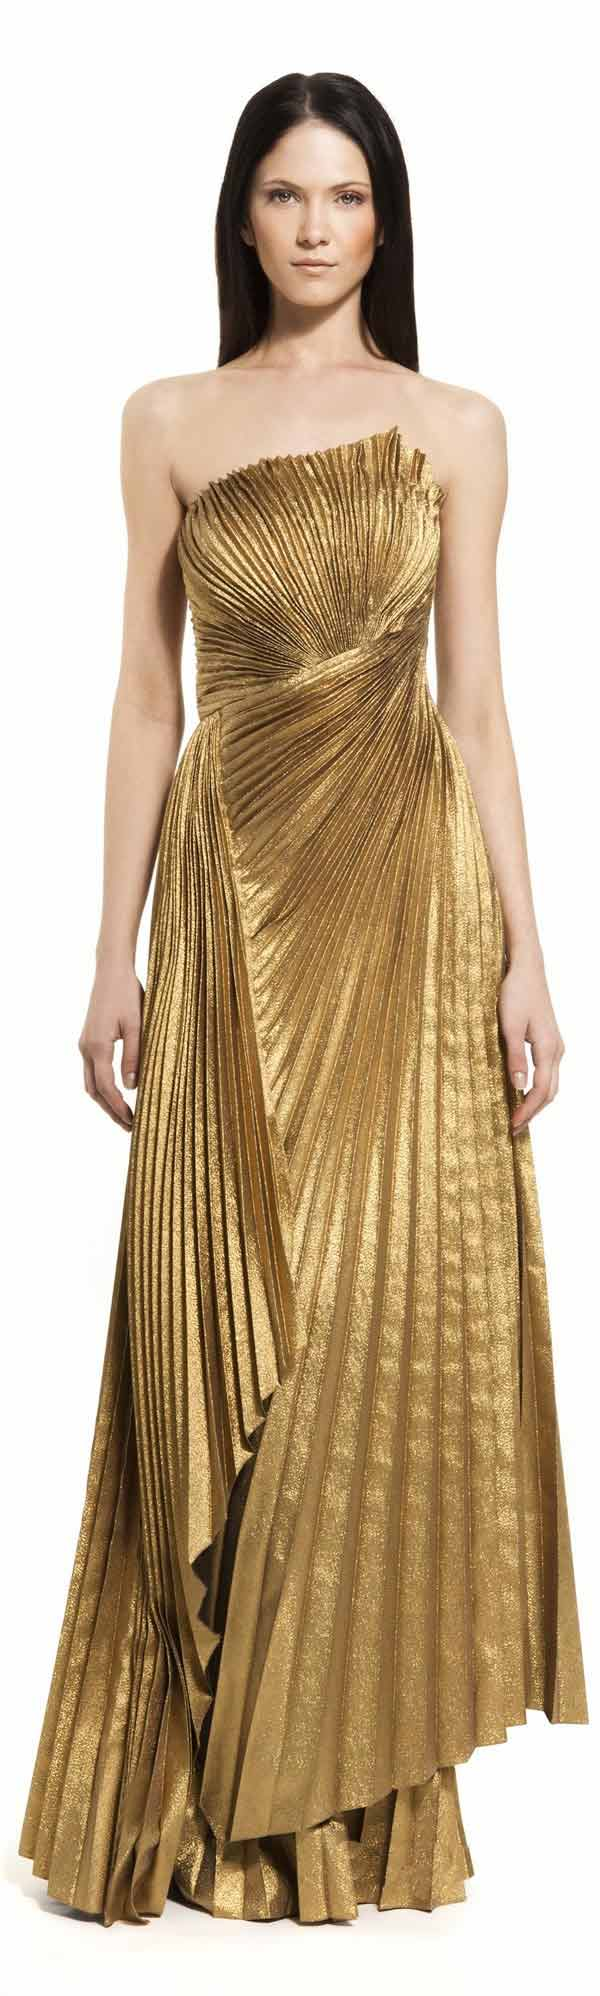 New Year's Eve dresses 2014_27